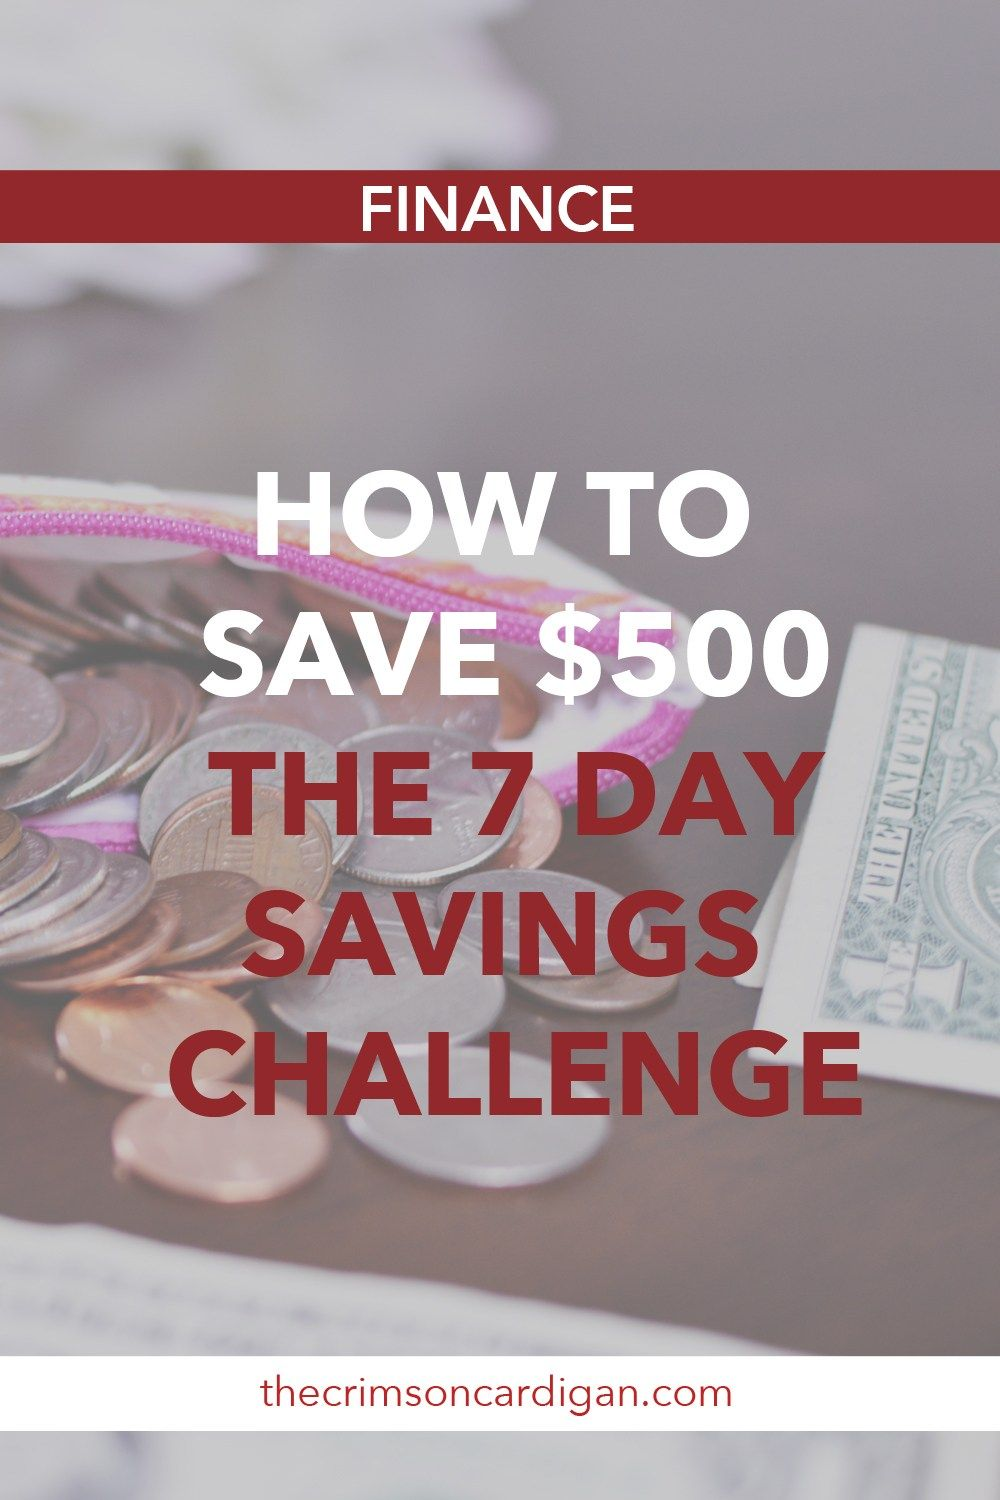 HOW TO SAVE $500 IN A WEEK | 7 DAY SAVINGS CHALLENGE